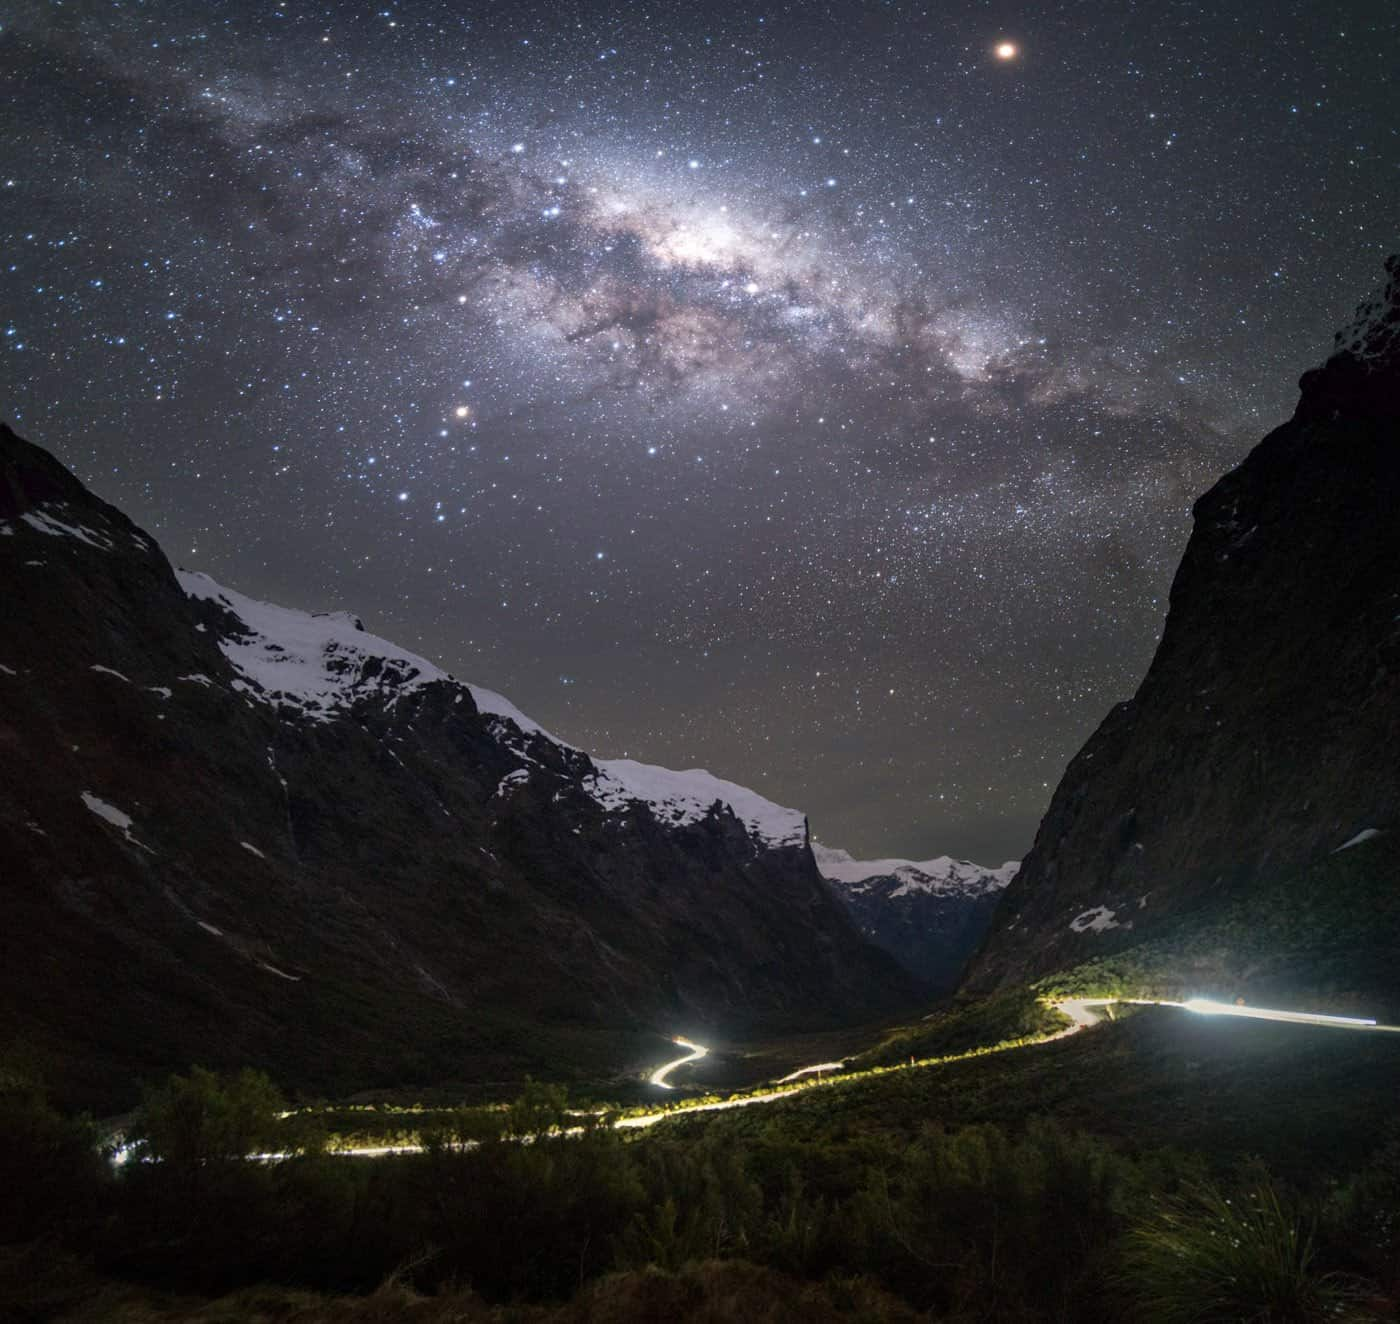 Astro and Milky Way photography on the night drive home from Milford Sound.